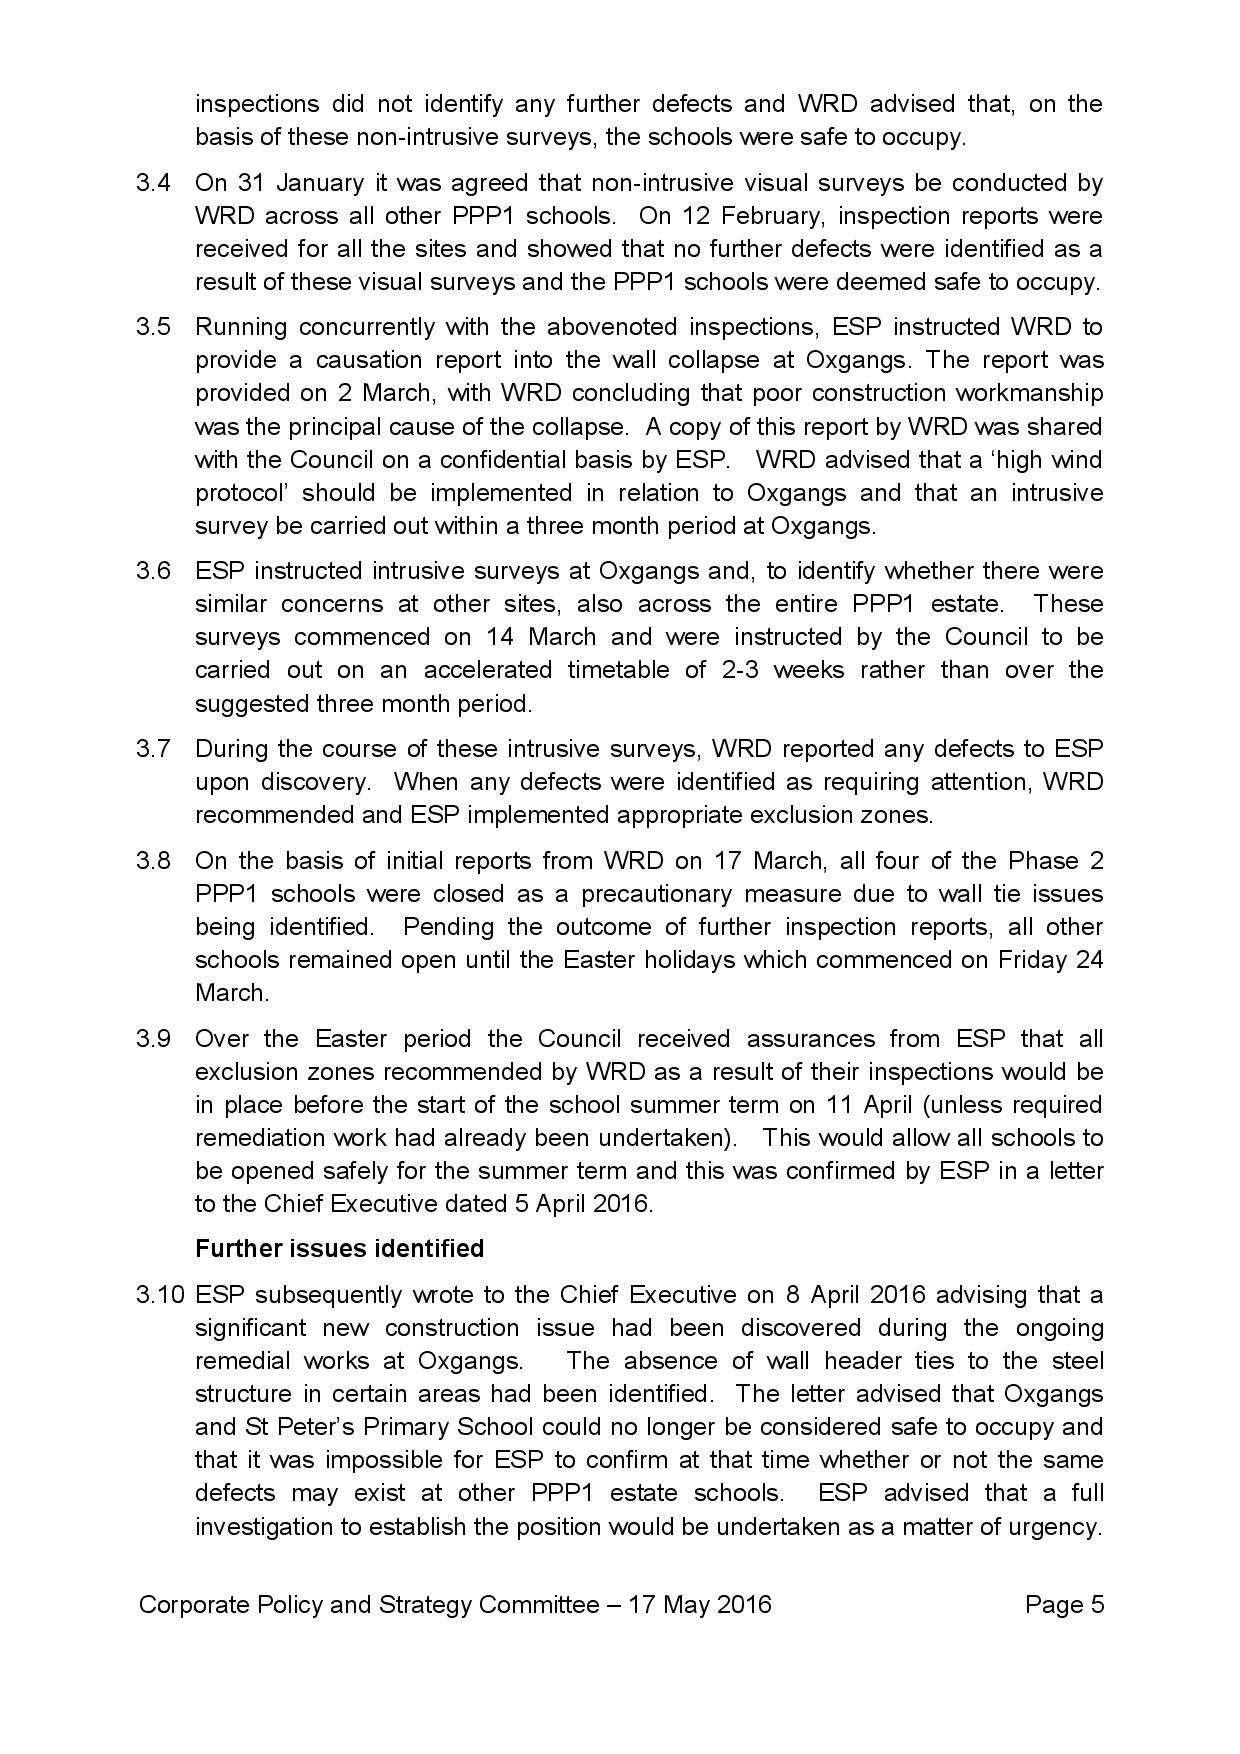 PPP1_Schools_CPS_Report_090516_v14_final-page-005.jpg